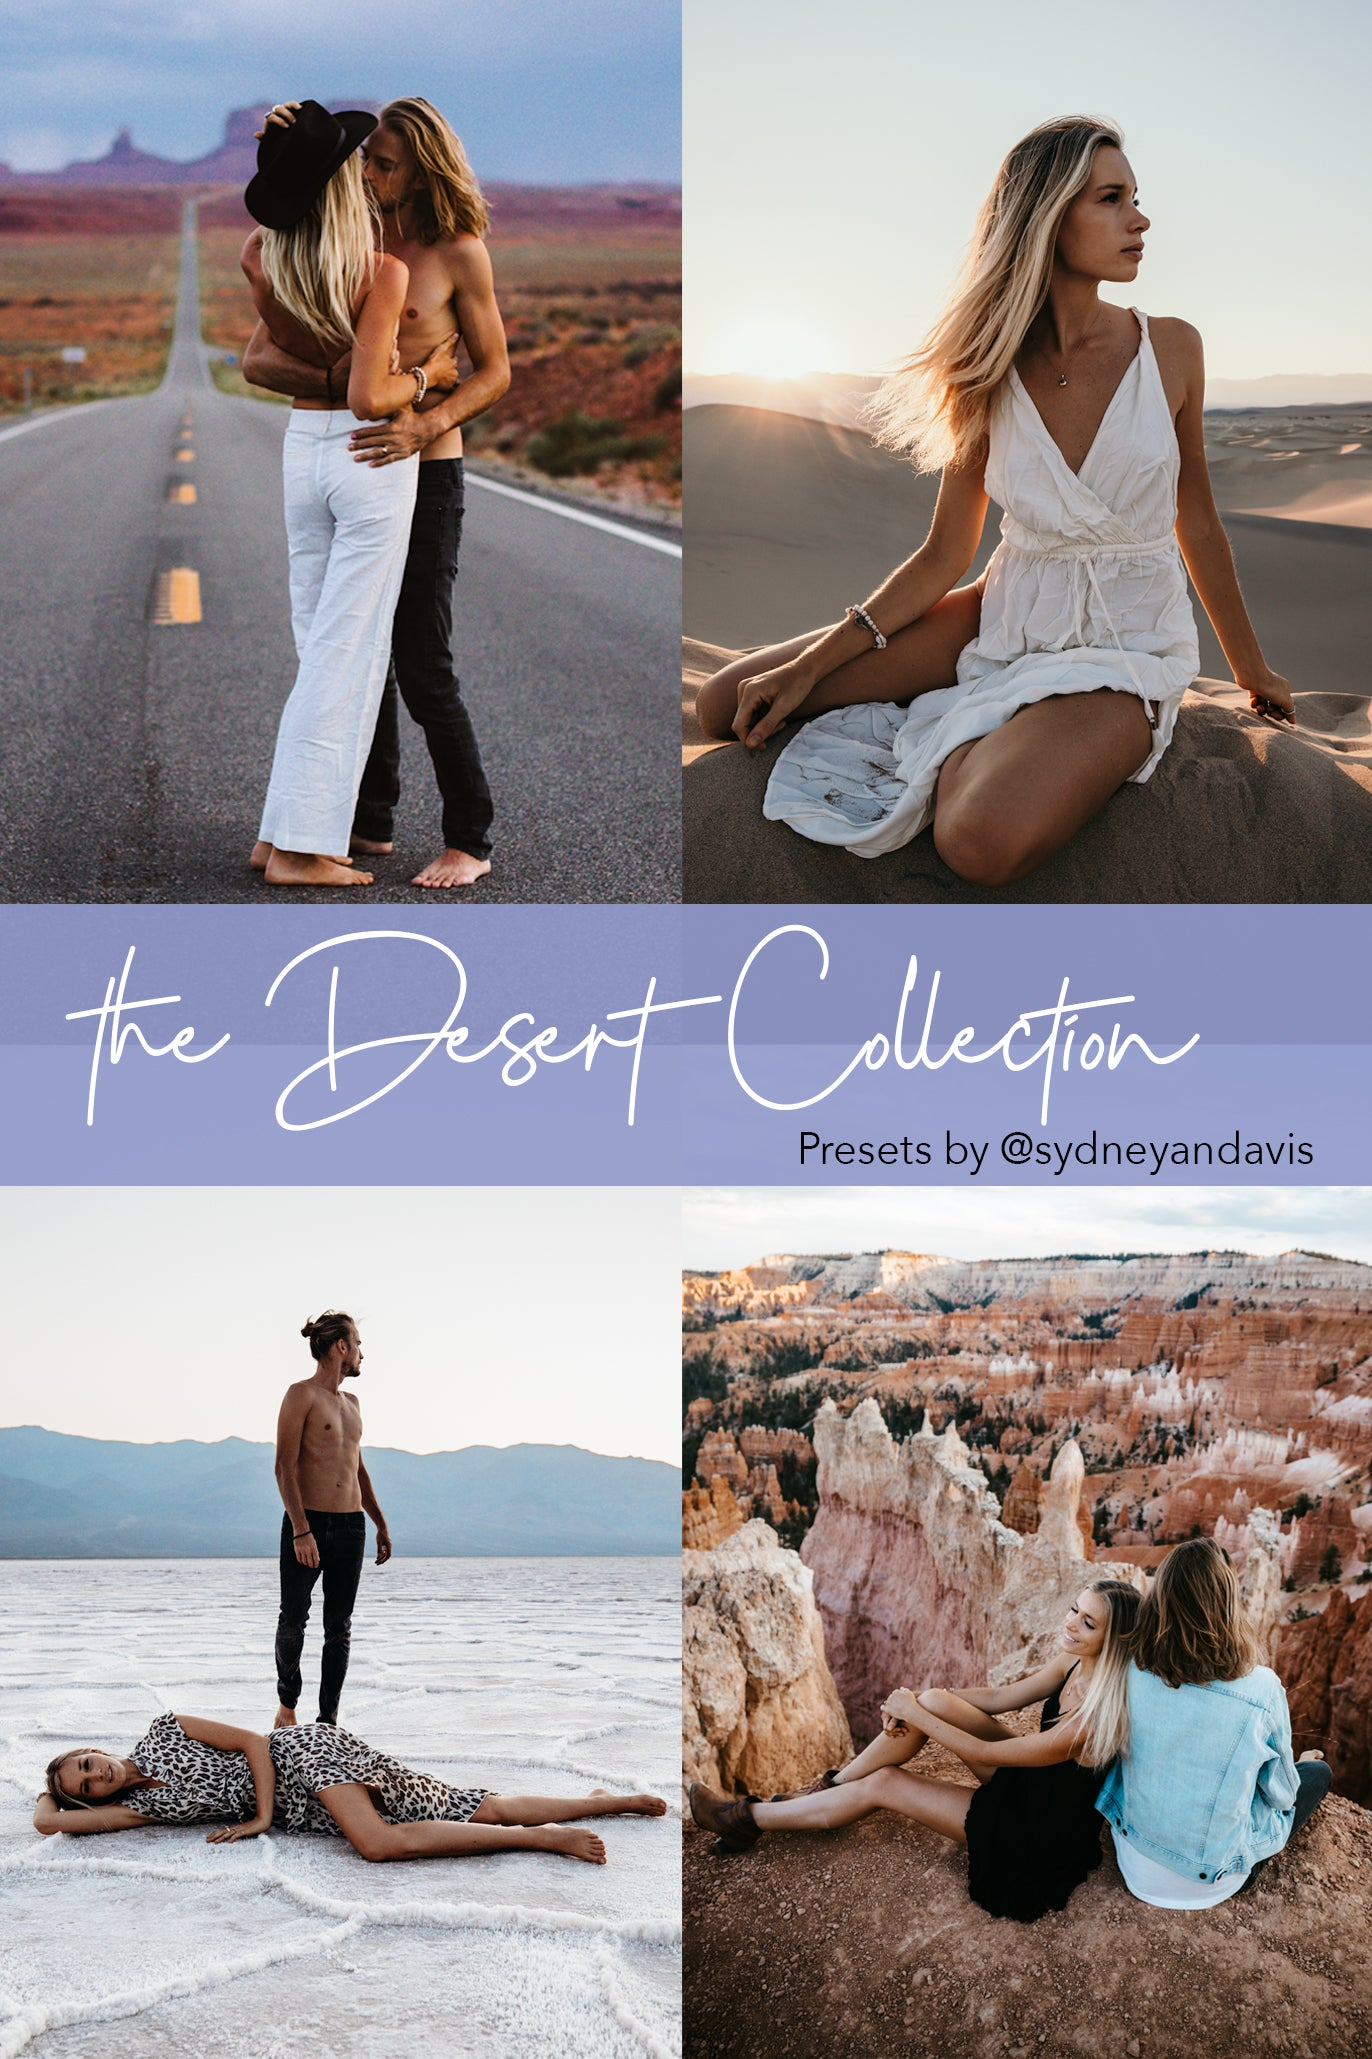 *NEW* The Desert Collection - 8 Desktop Presets